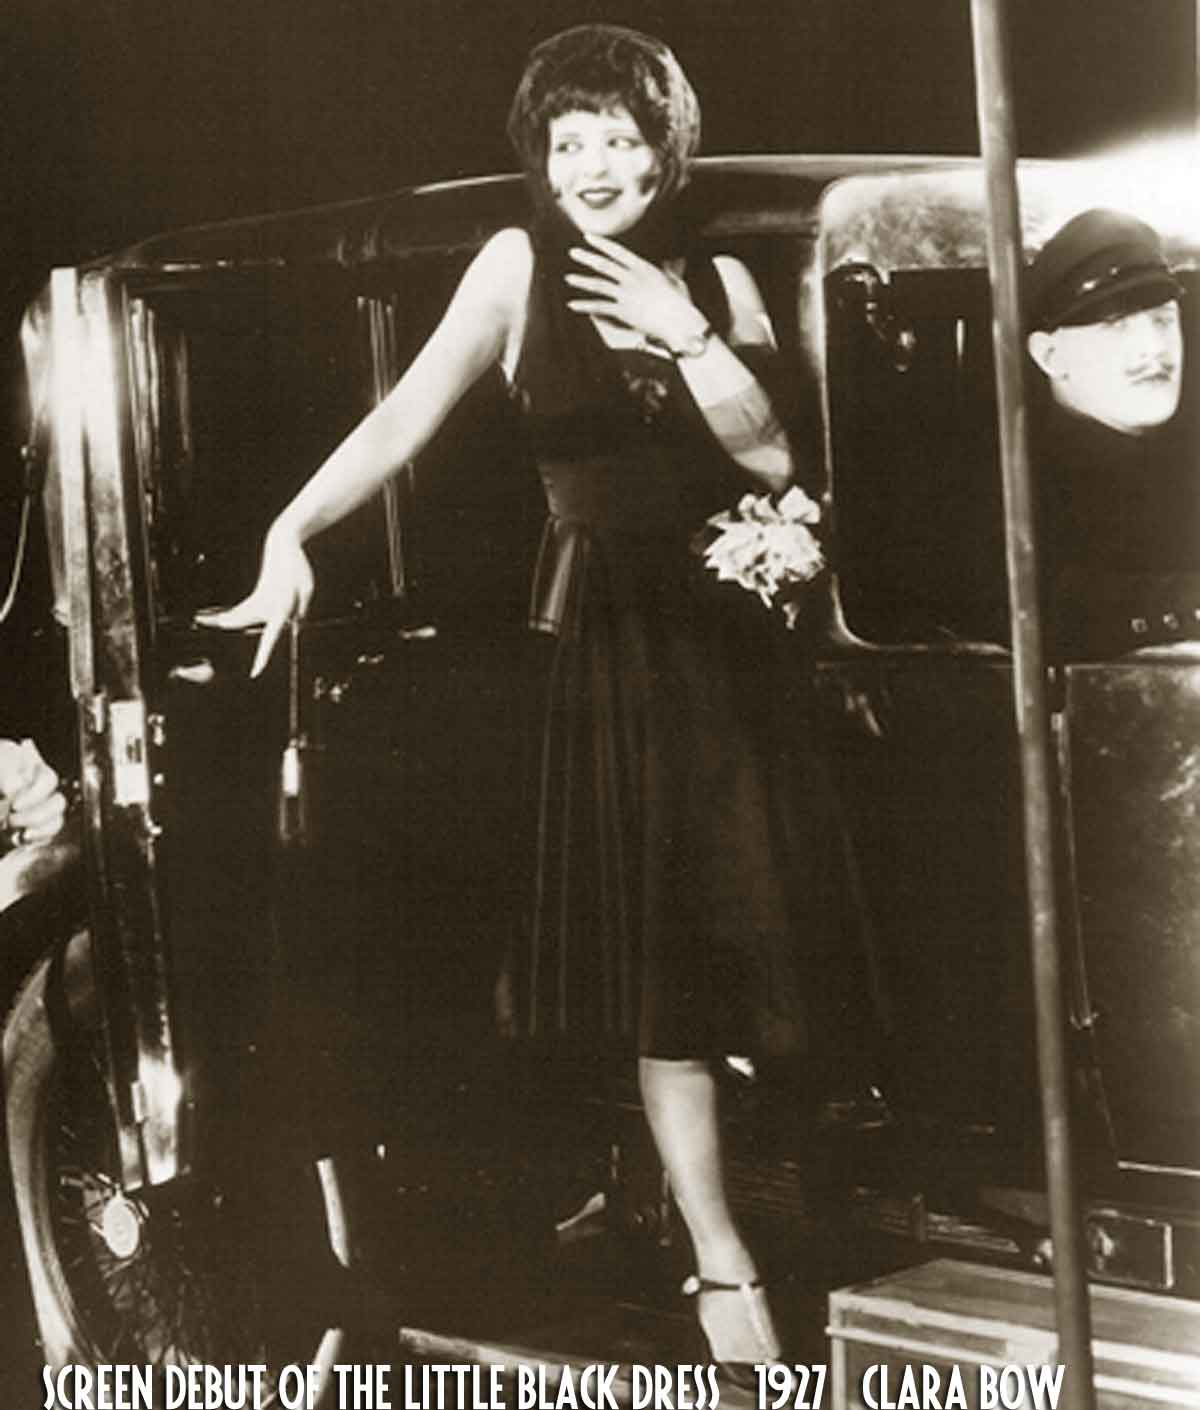 screen-debut-of-the-little-black-dress-1927-clara-bow